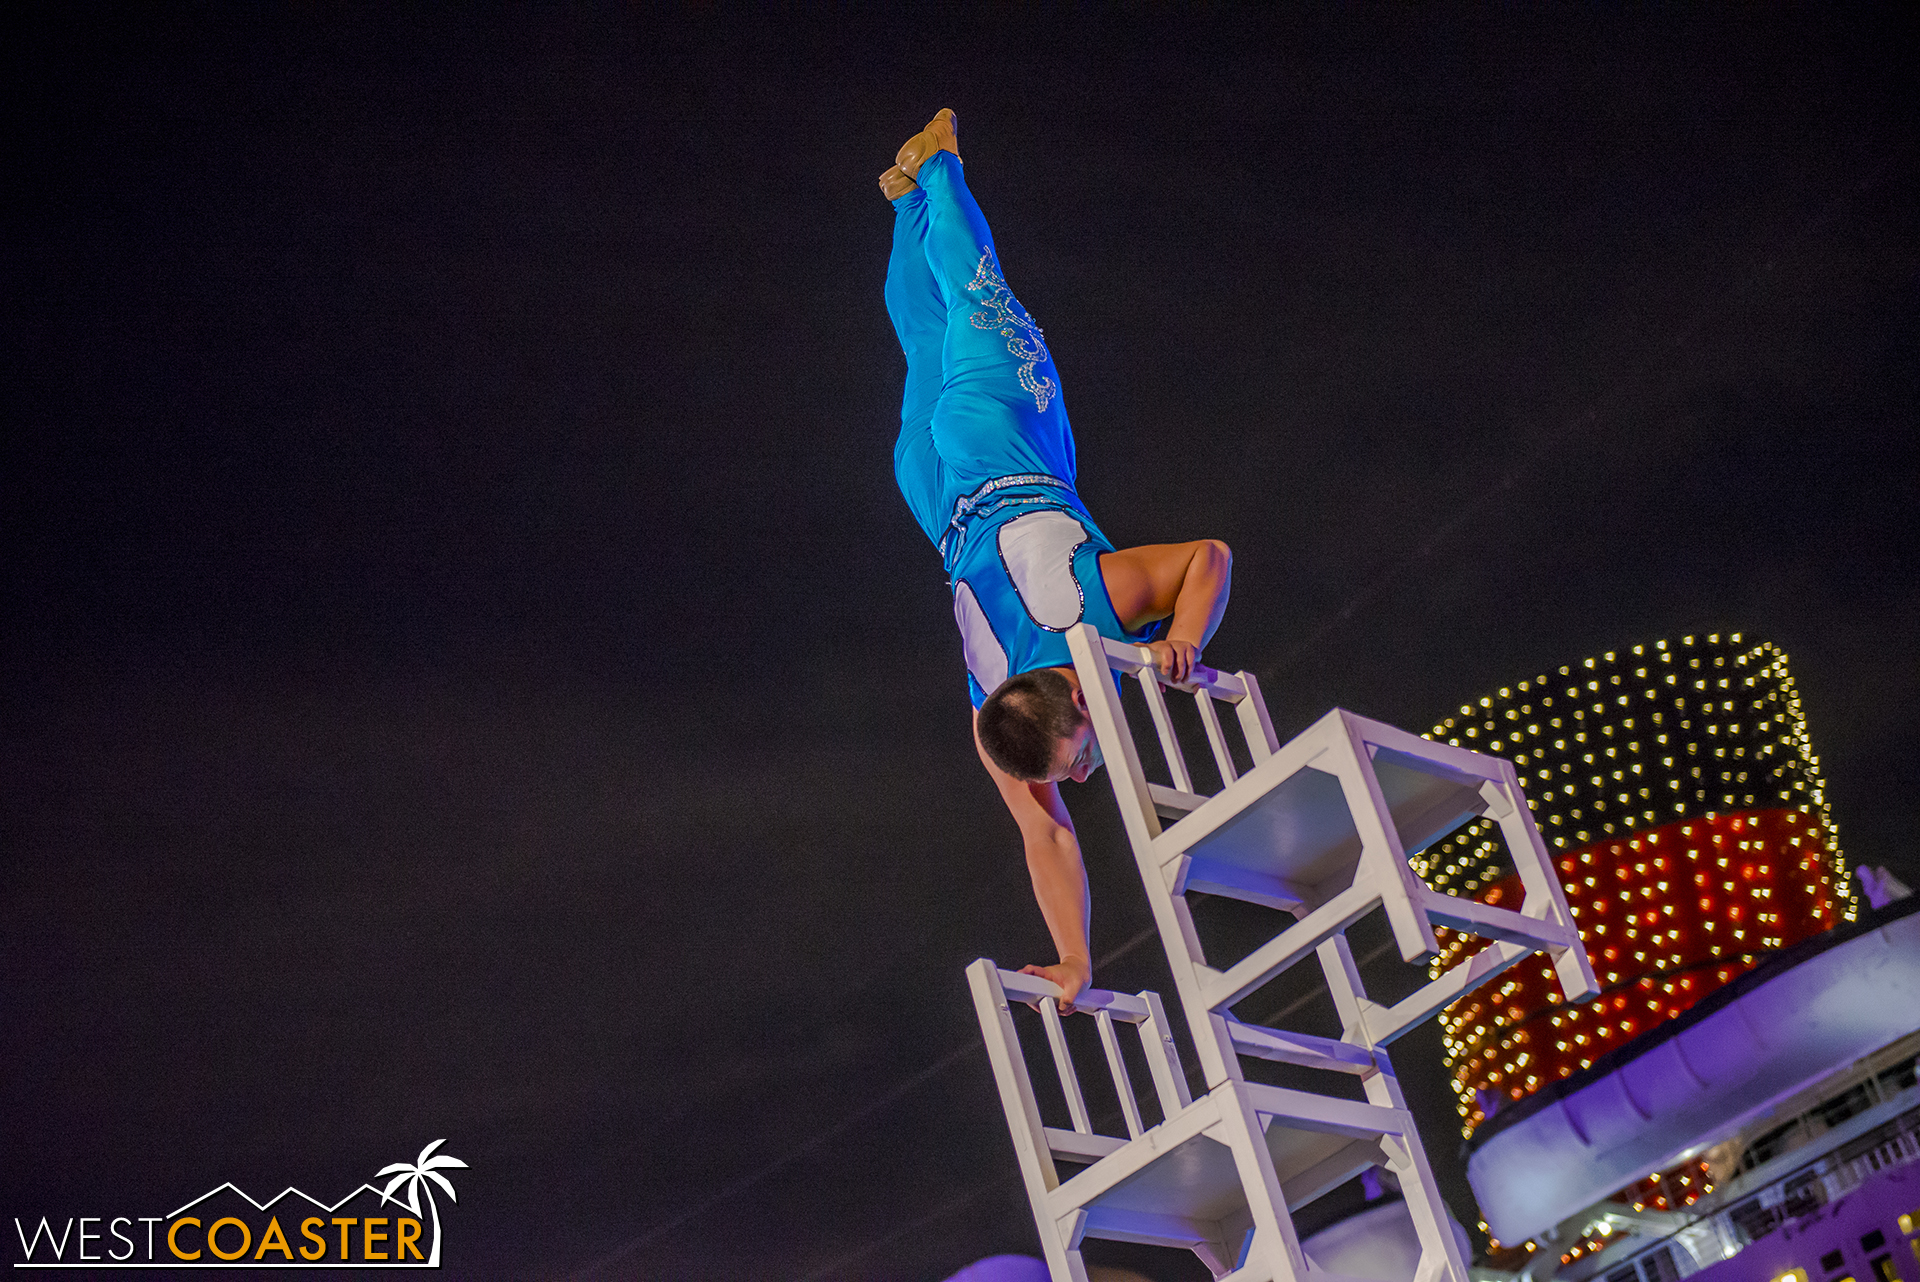 The performer stacks chairs higher and higher to show off his balancing and gymnastic skills.